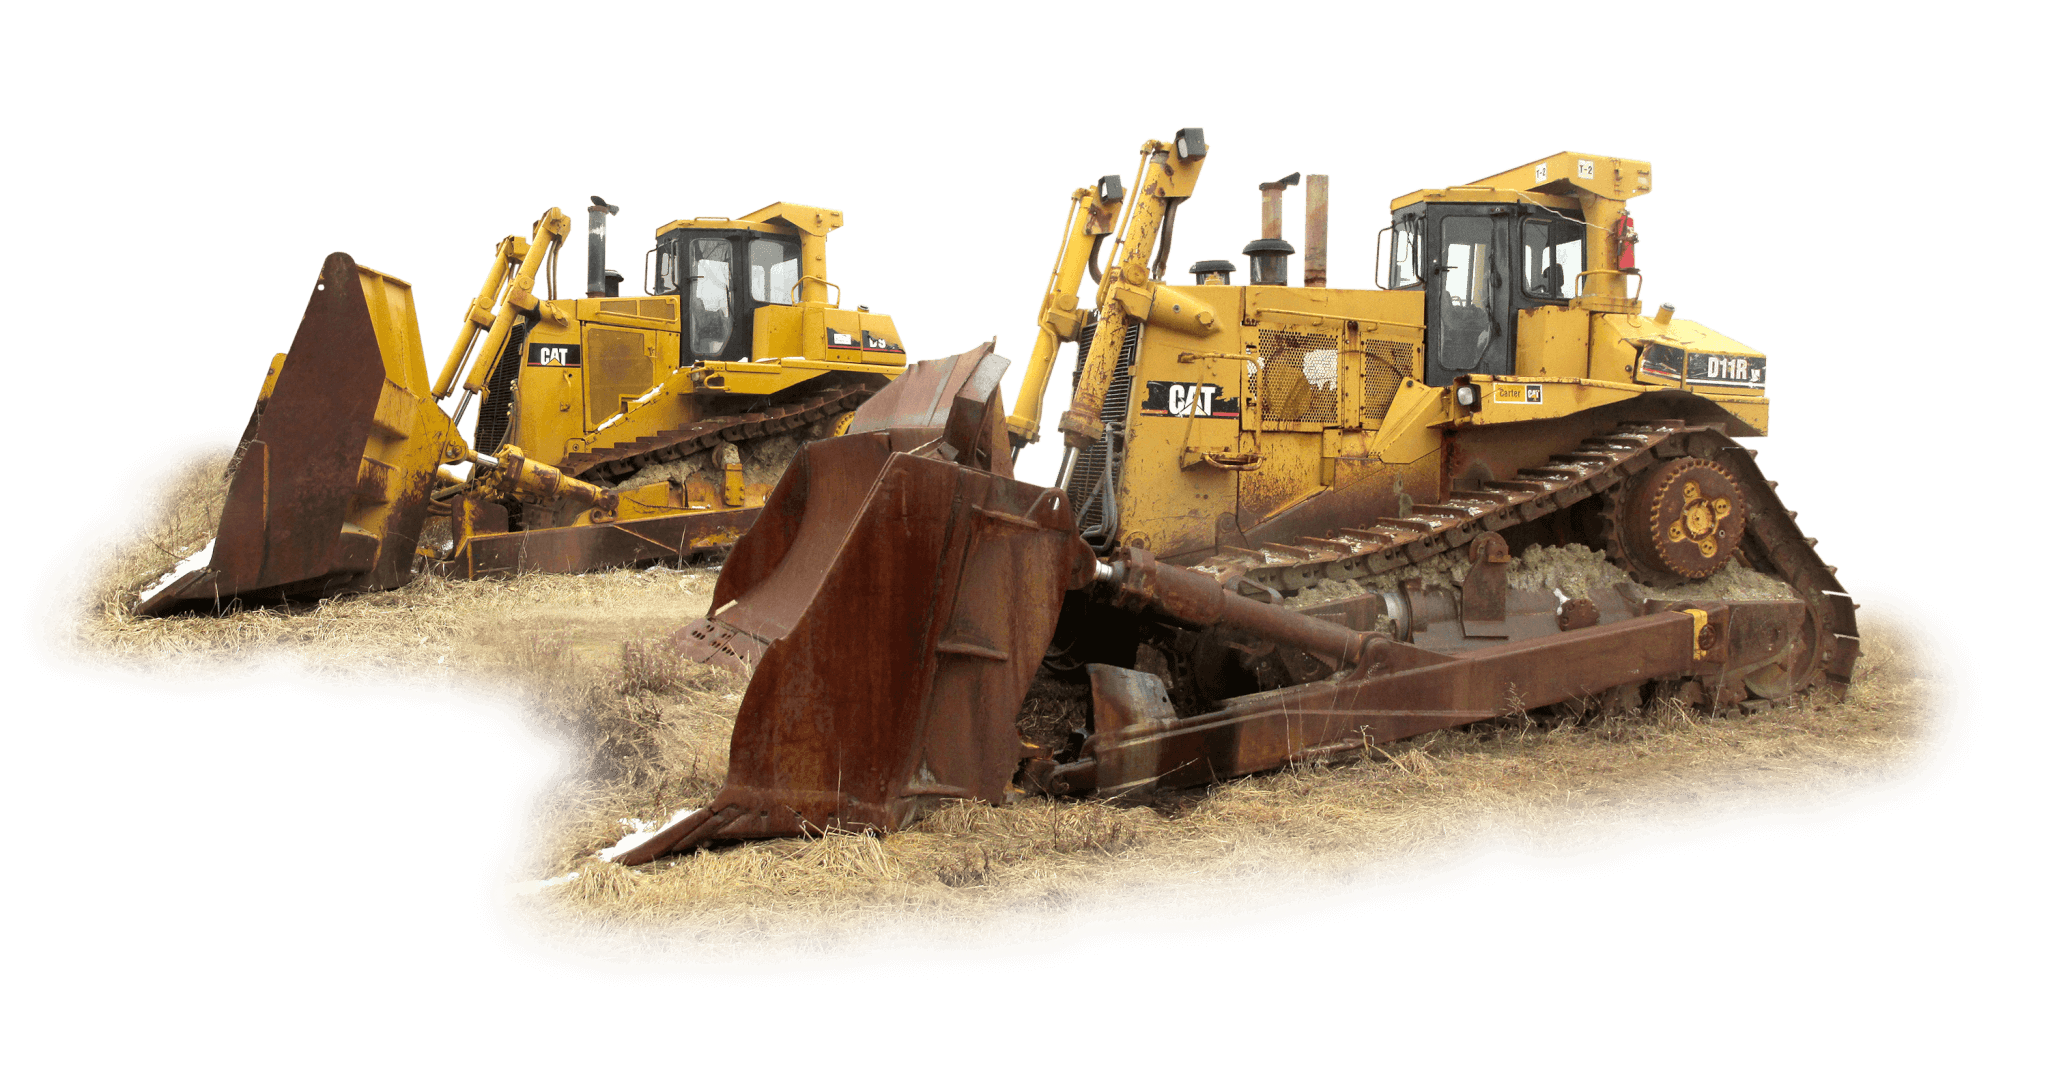 Get accurate construction equipment values with HeavyWorth